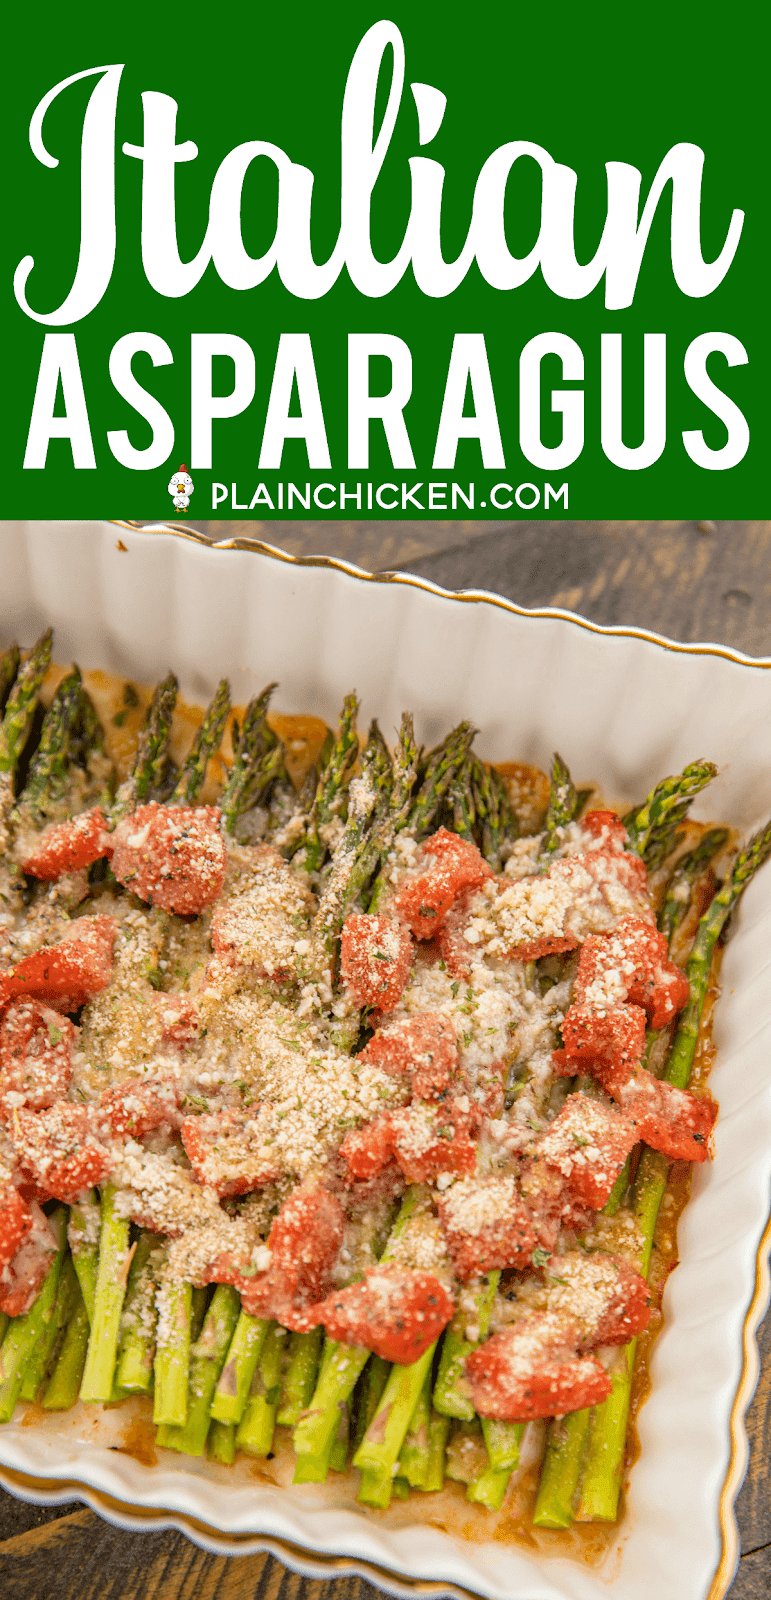 Italian Asparagus - our favorite asparagus recipe!! Such an easy side dish!! Fresh asparagus, diced Italian tomatoes, garlic salt, pepper, Italian seasoning, parmesan and bread crumbs. SO easy! Ready to eat in under 30 minutes! Goes with everything - chicken, pork, steak, casseroles, pasta. Great for an easy weeknight side dish, cookouts and dinner parties. SO good! #asparagus #sidedish #vegetable